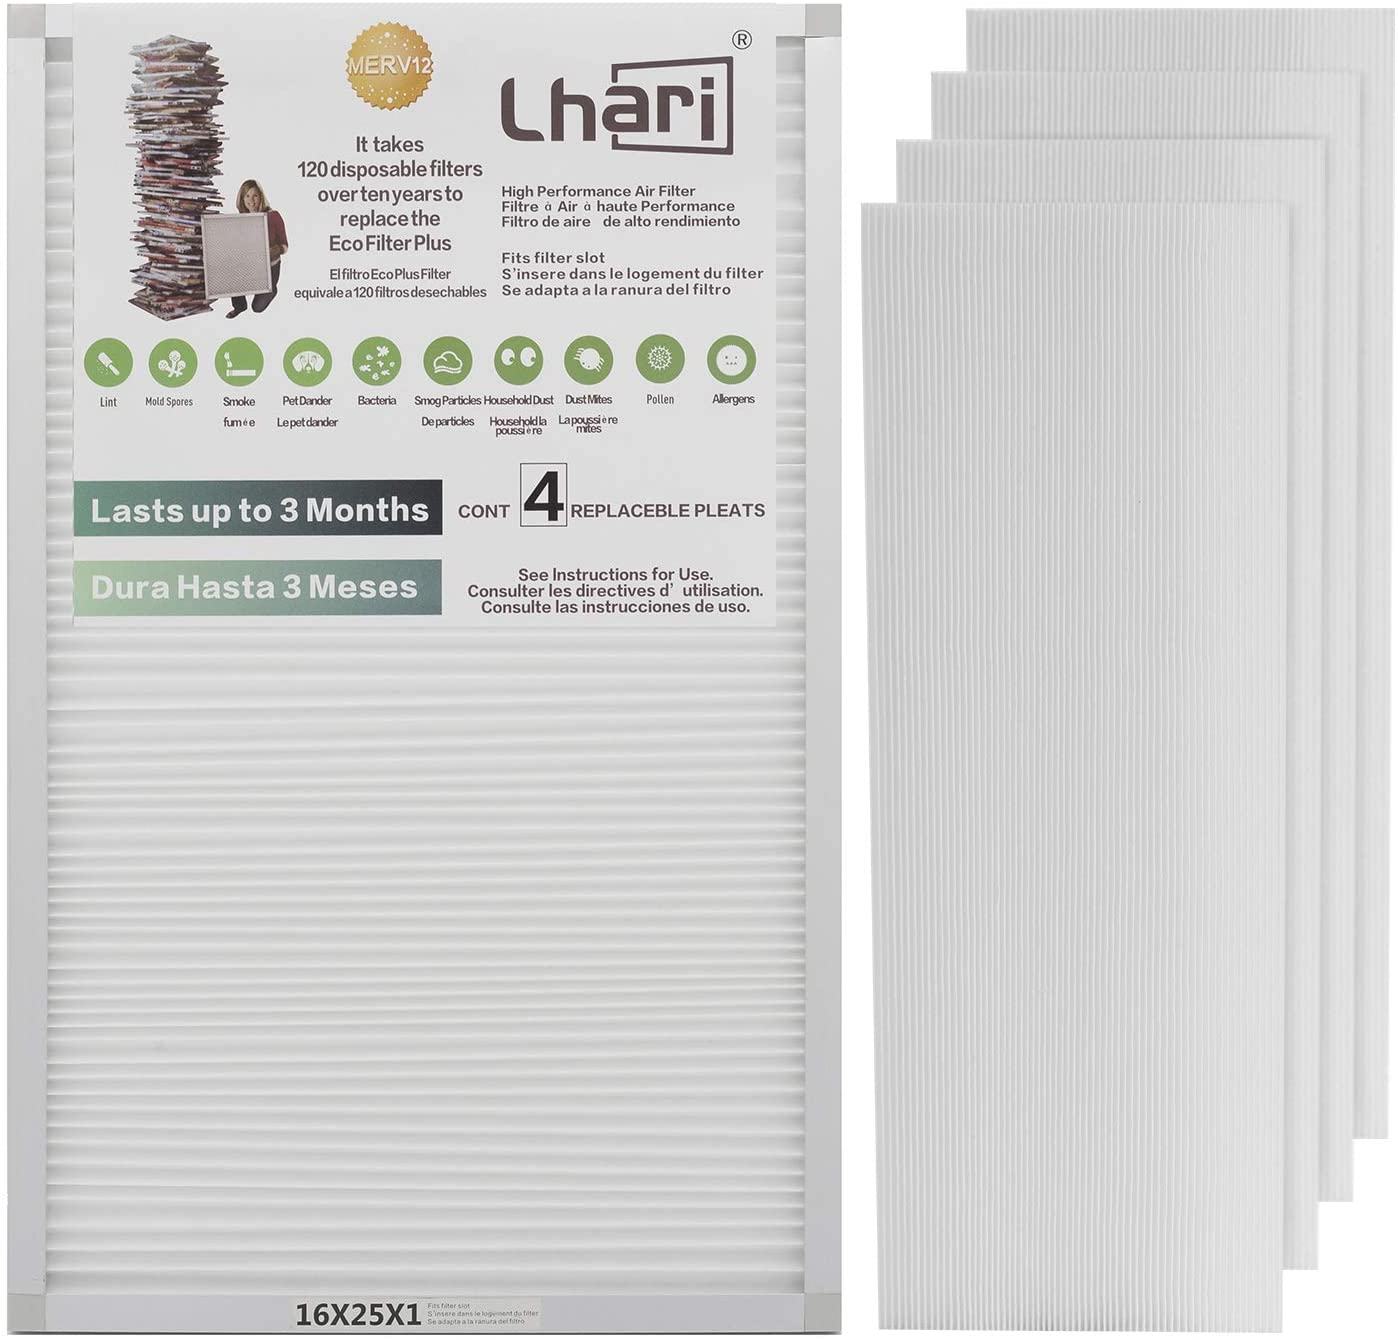 Lhari 16x25x1 MPR1500 Air Filter Repalcement, Allergy Filters MERV 12 AC Furnace Pleated Air Filter, Pet Dander Removal, Pack of 4